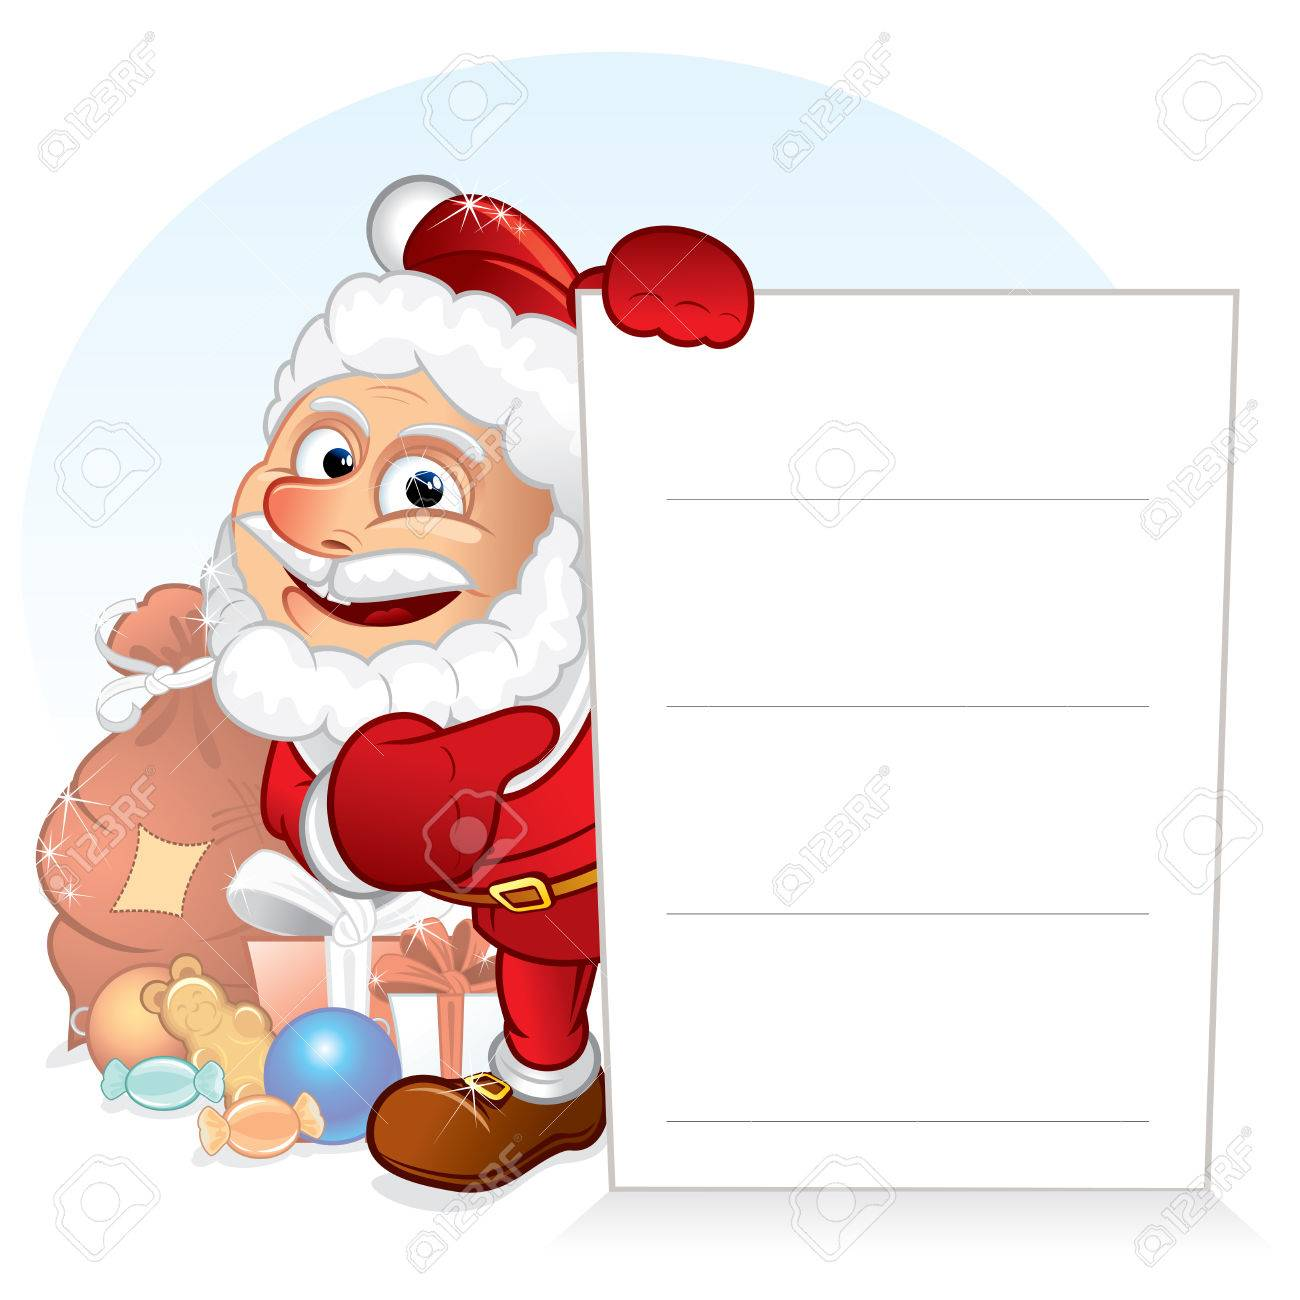 100 blank letter from santa template thanksgiving crafts blank letter from santa template 11 660 santa face cliparts stock vector and royalty free santa pronofoot35fo Gallery